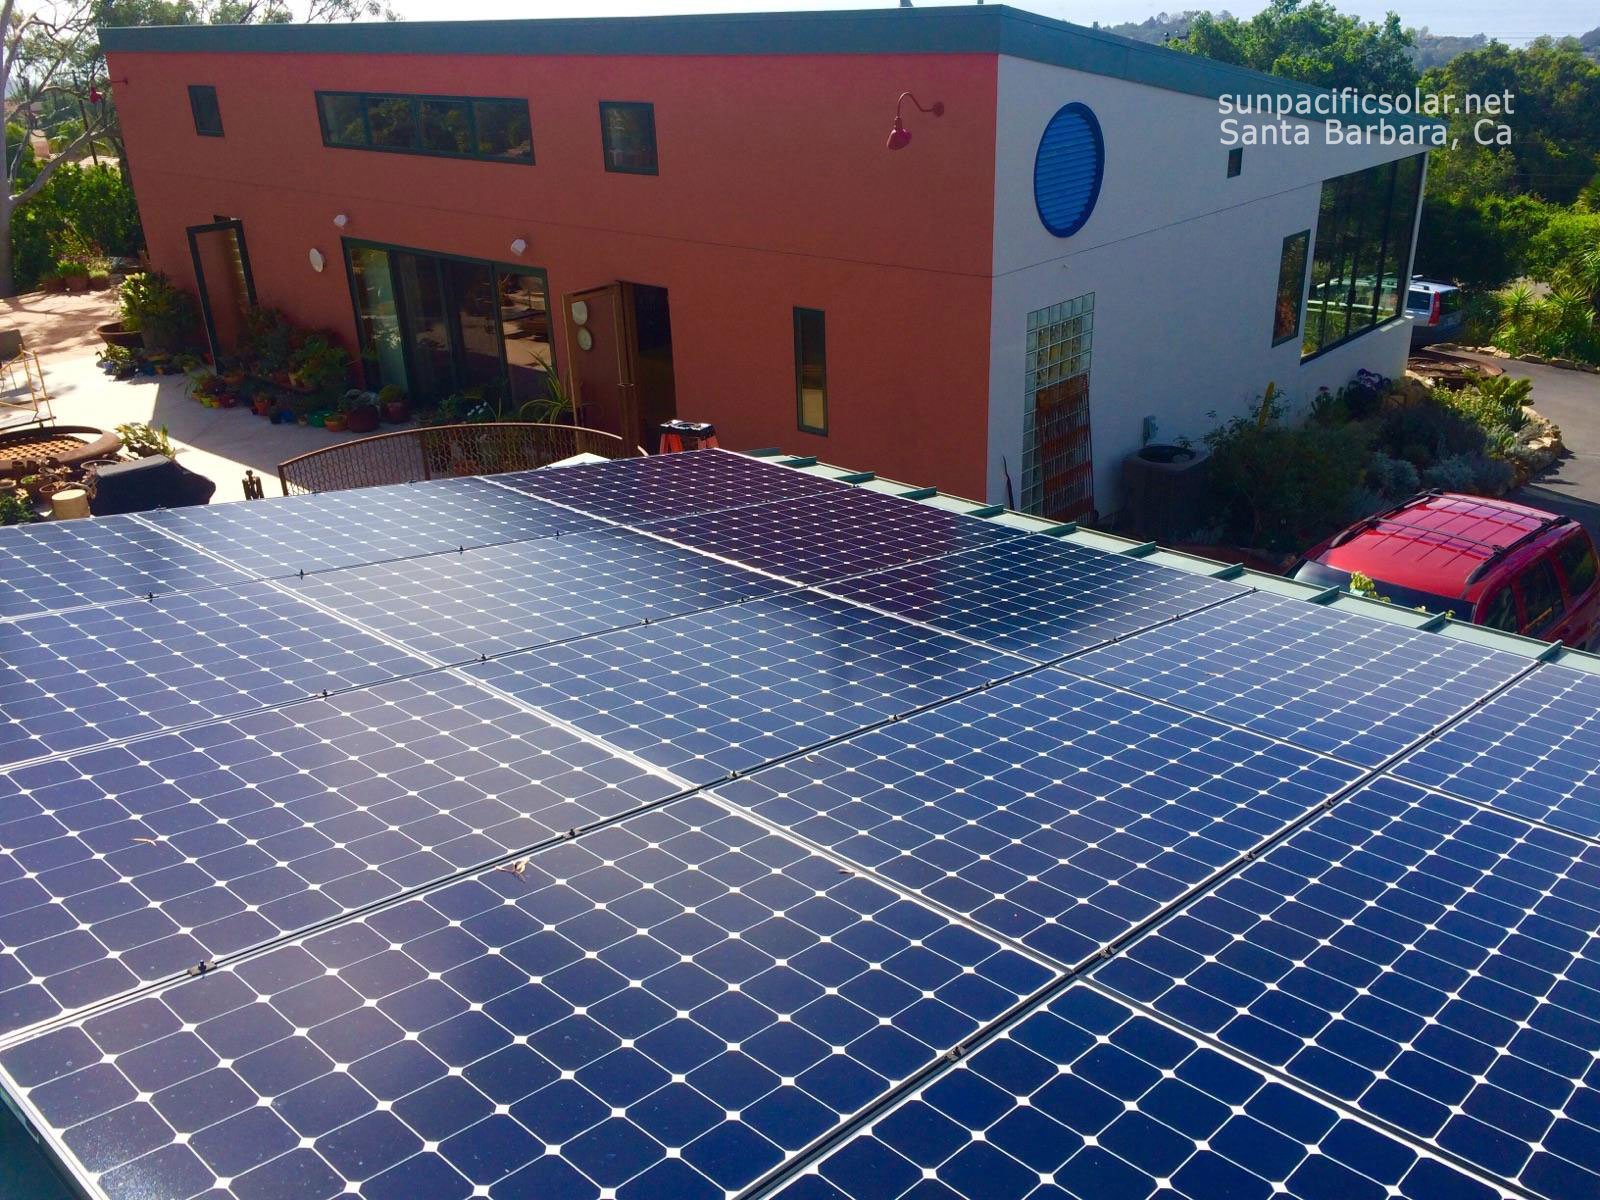 5.1kW SunPower installation on a standing seam metal roof in Santa Barbara.